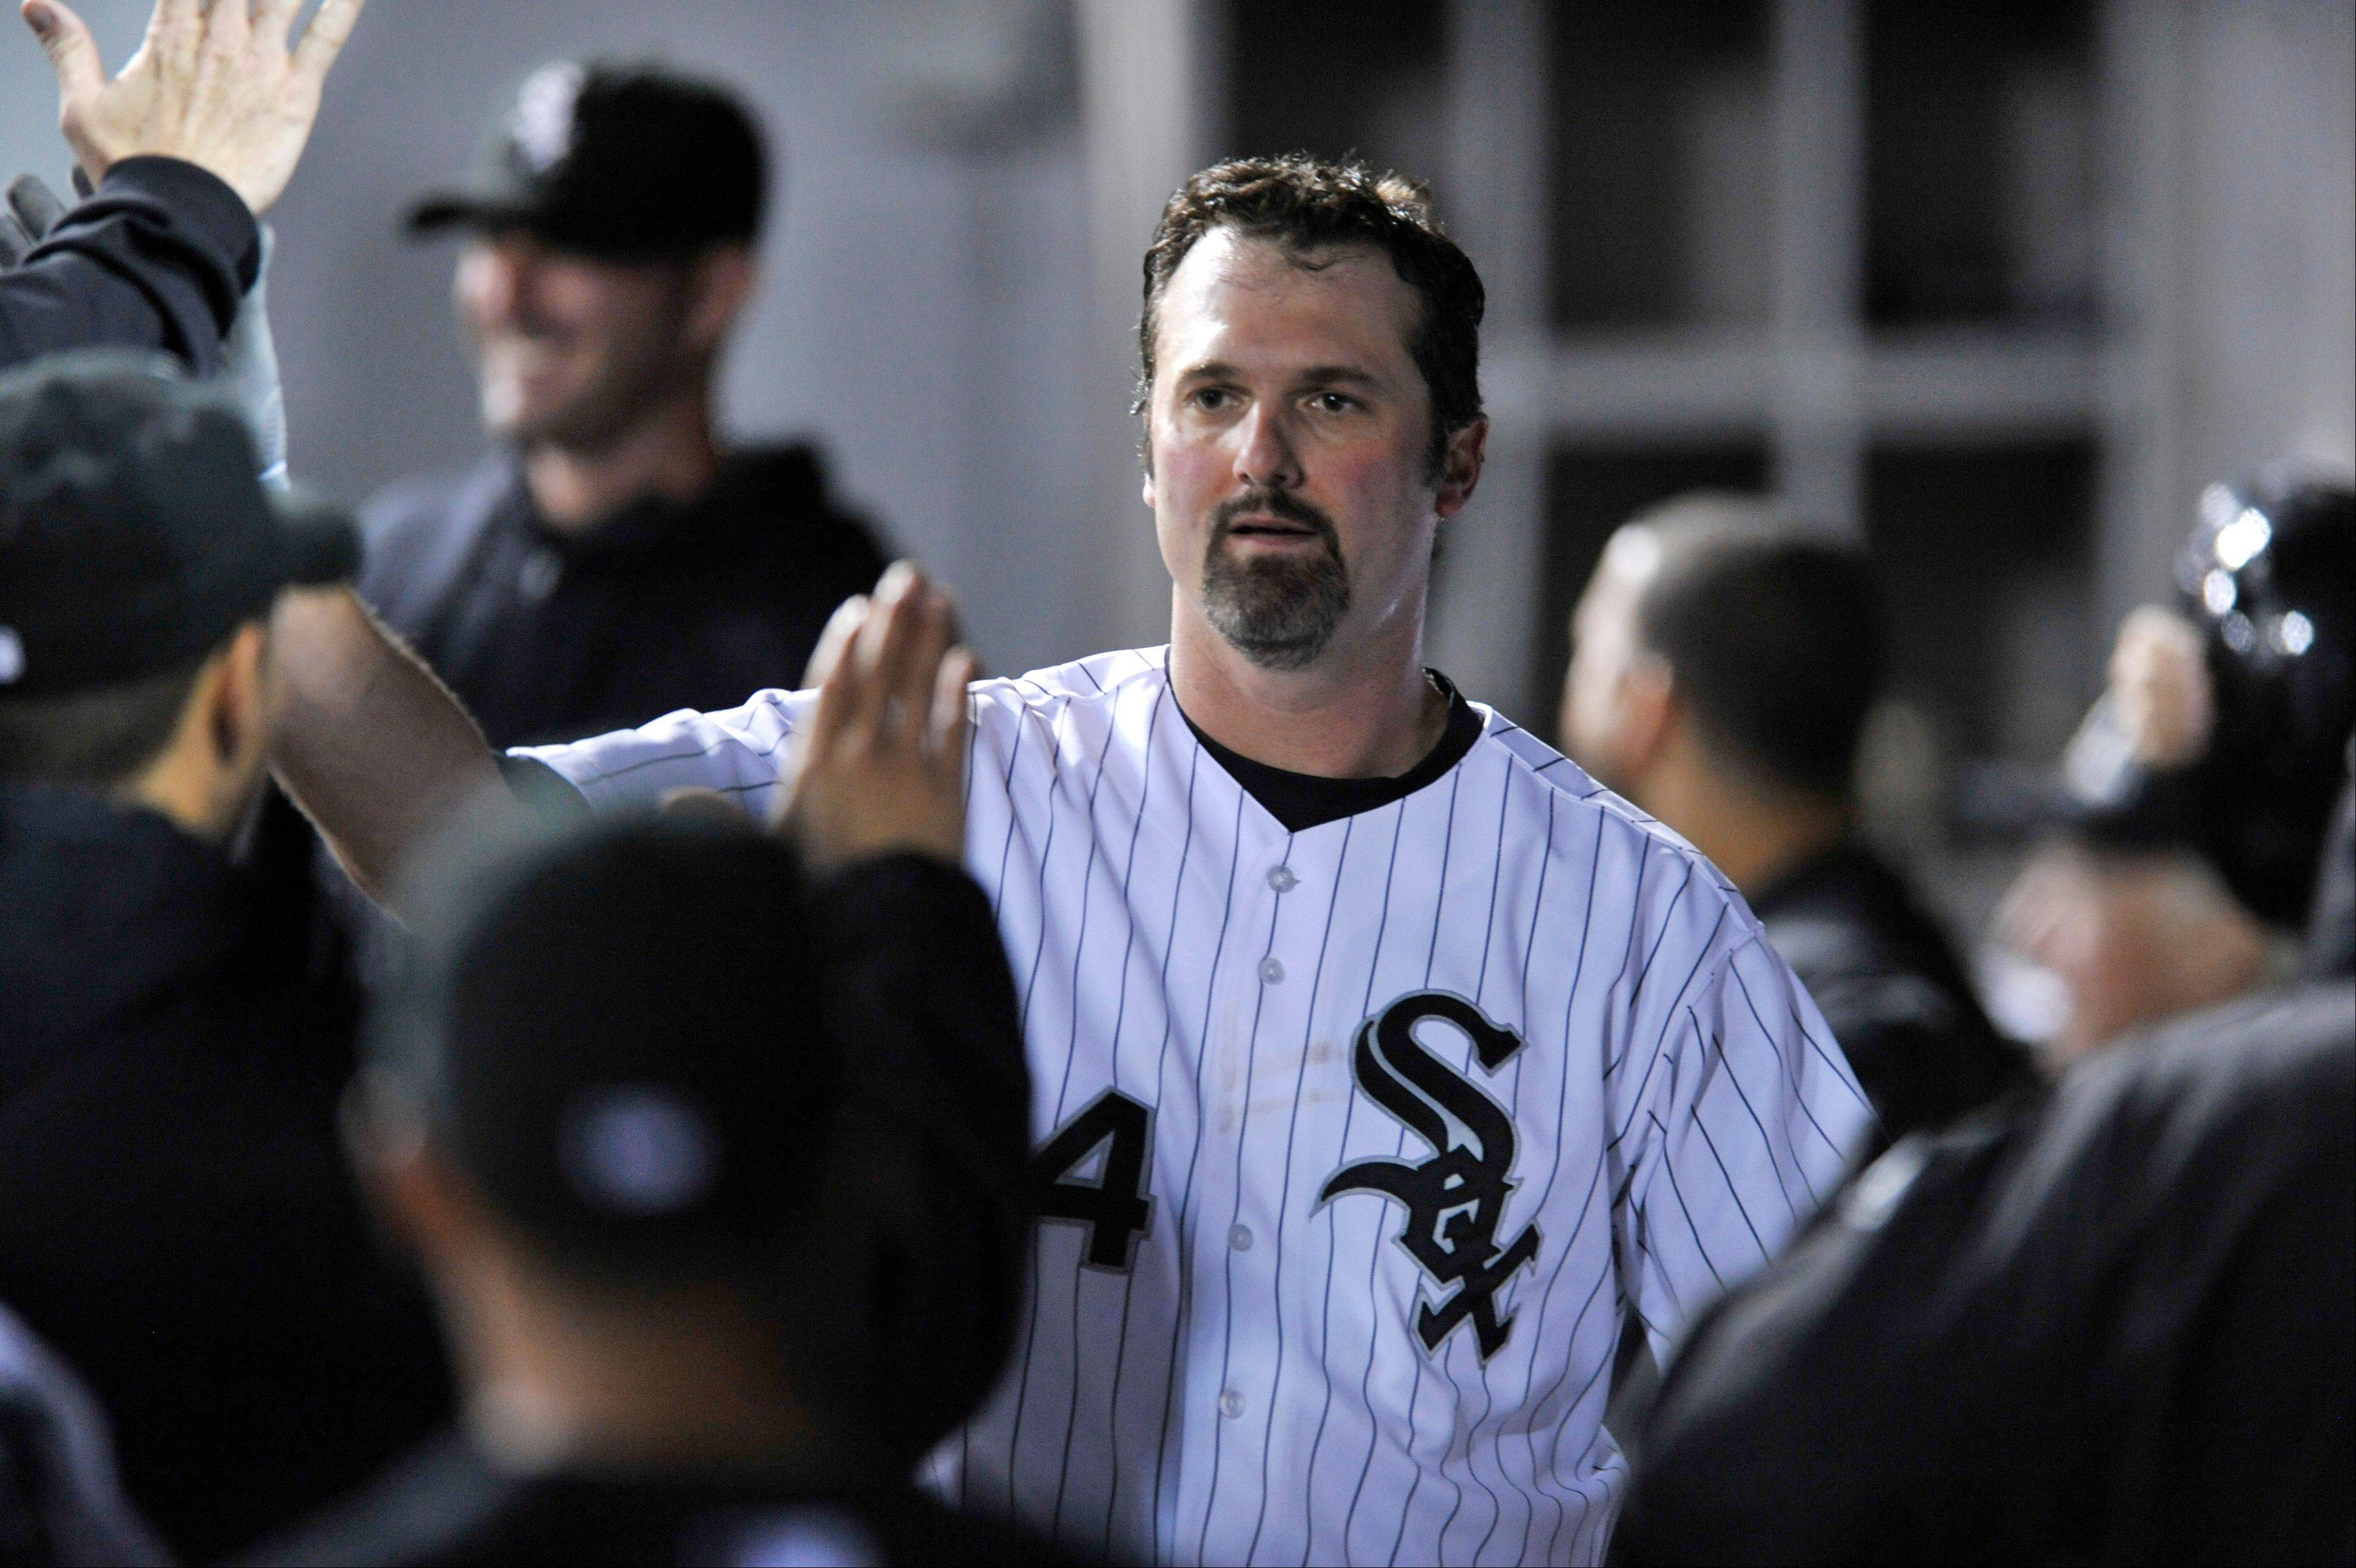 White Sox first baseman Paul Konerko celebrates with teammates in the dugout after scoring on a Gordon Beckham single during the first inning of a baseball game against the Minnesota Twins in Chicago, Monday, Sept. 16, 2013.